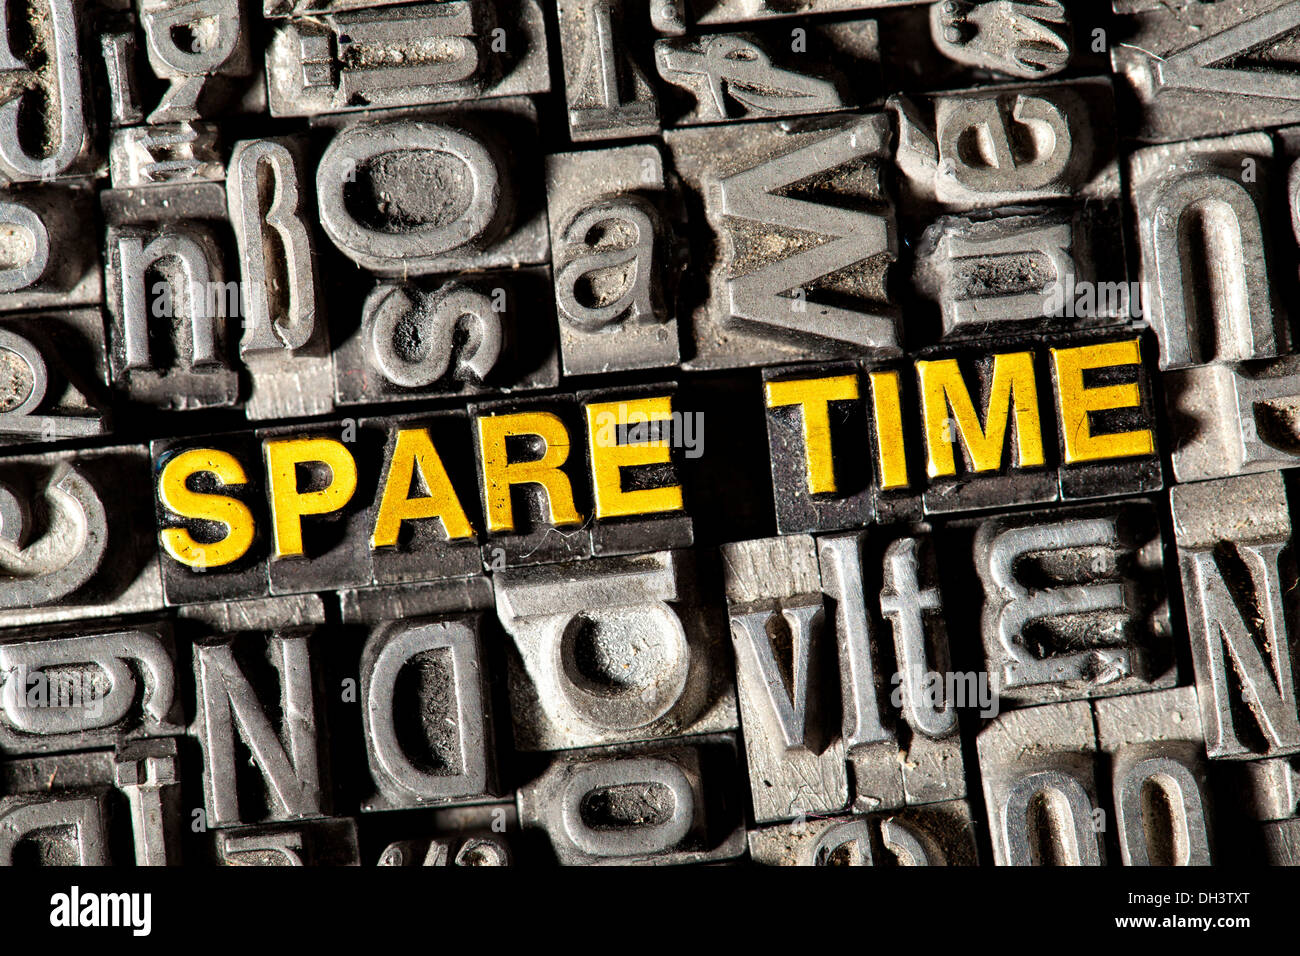 Old lead letters forming the words 'SPARE TIME' - Stock Image